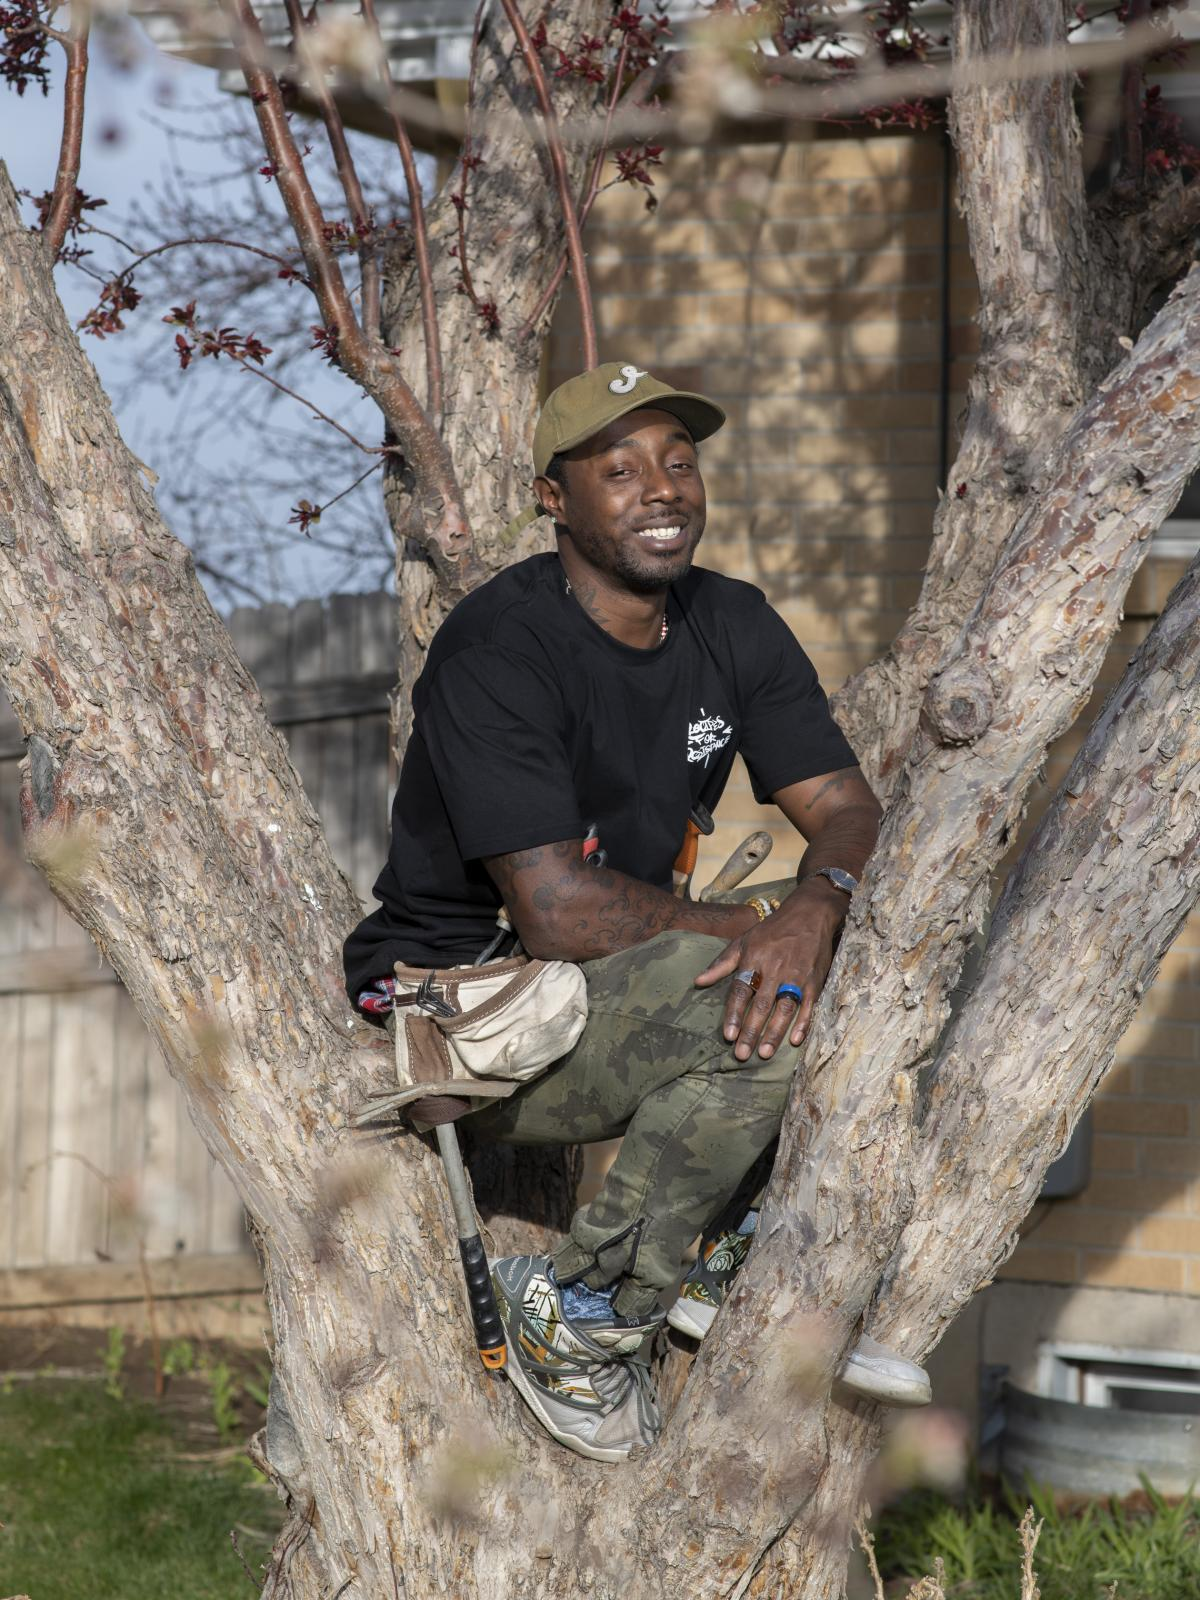 Vita, a vegan rapper, wants to encourage people of color to eat healthier by growing their own vegetables. He sells his own line of kale, beet and arugula seeds.